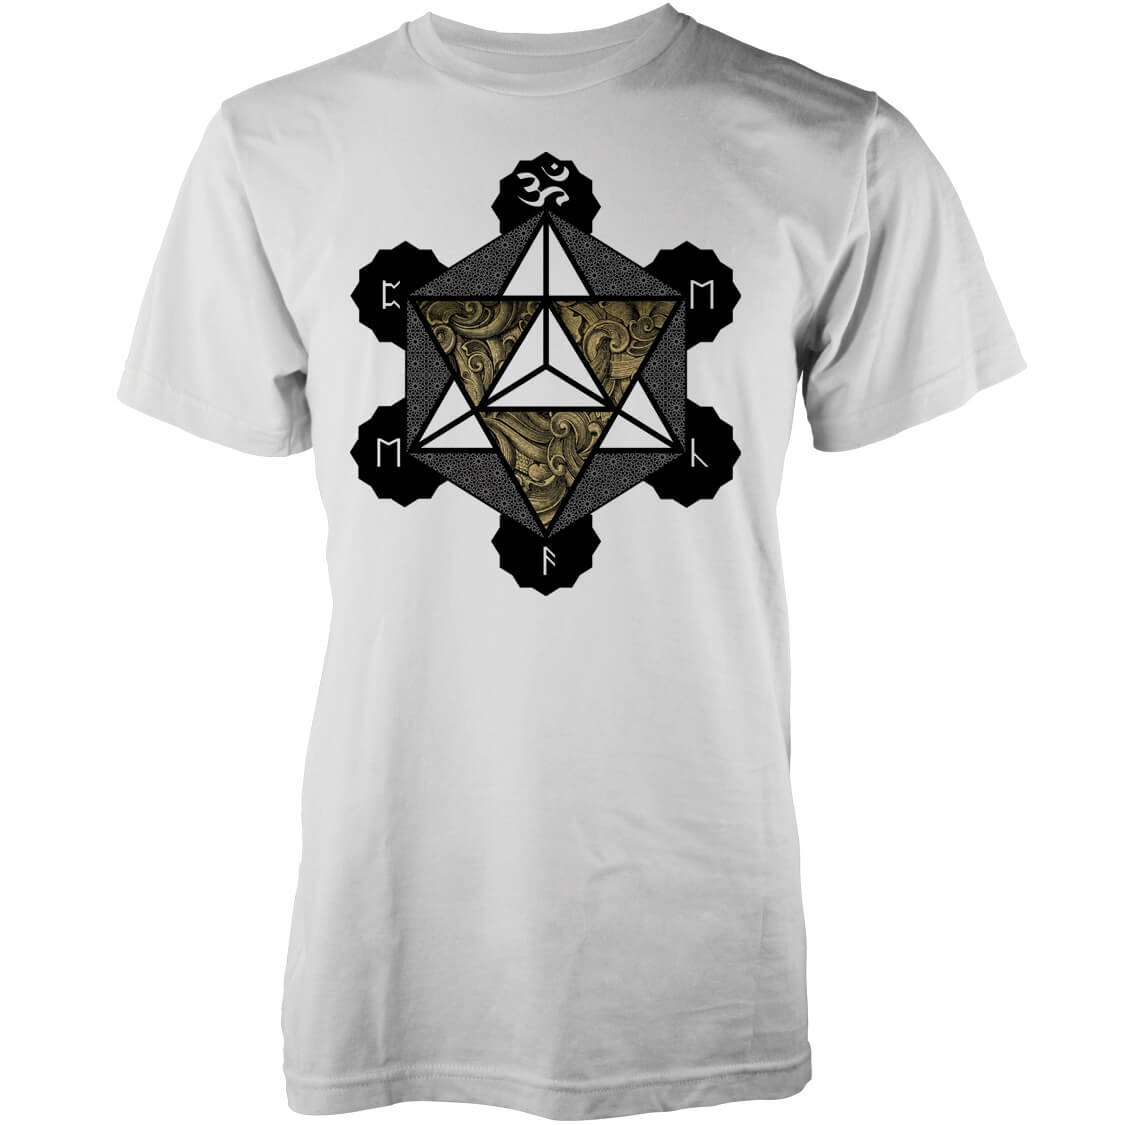 T-Shirt Homme Metatron Abandon Ship - Blanc